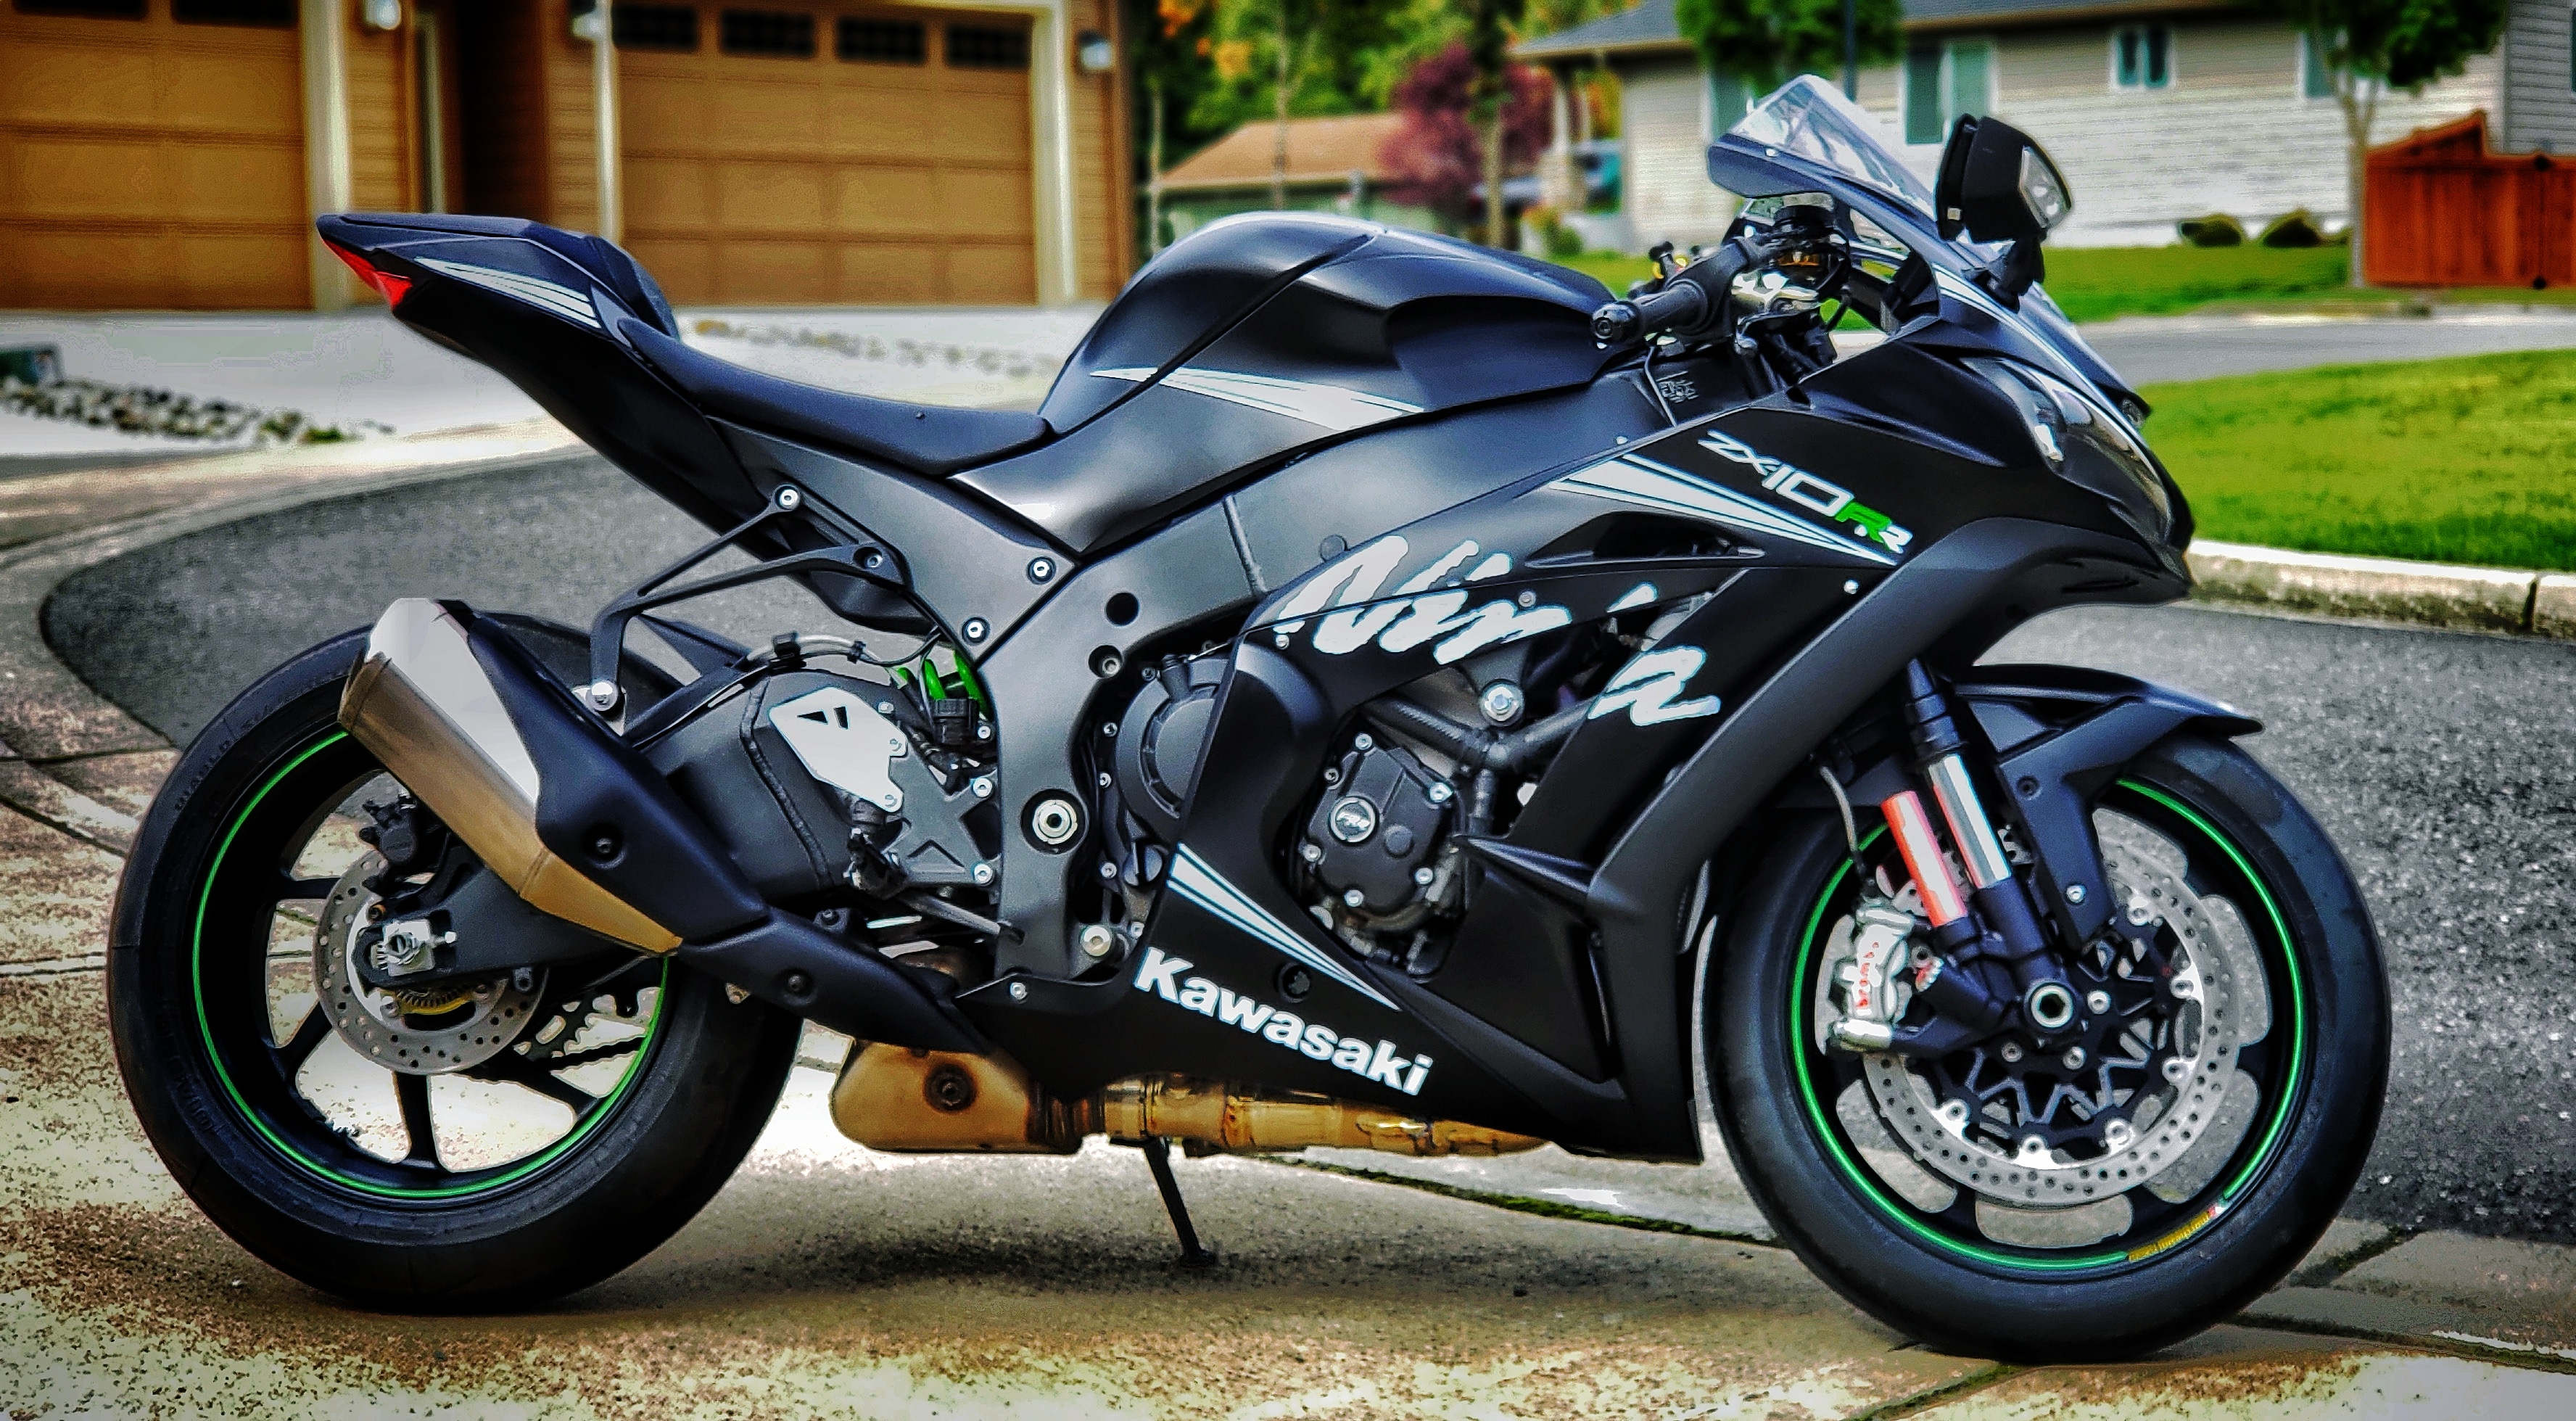 Let's see your ZX10R! - Page 29 - ZX Forums